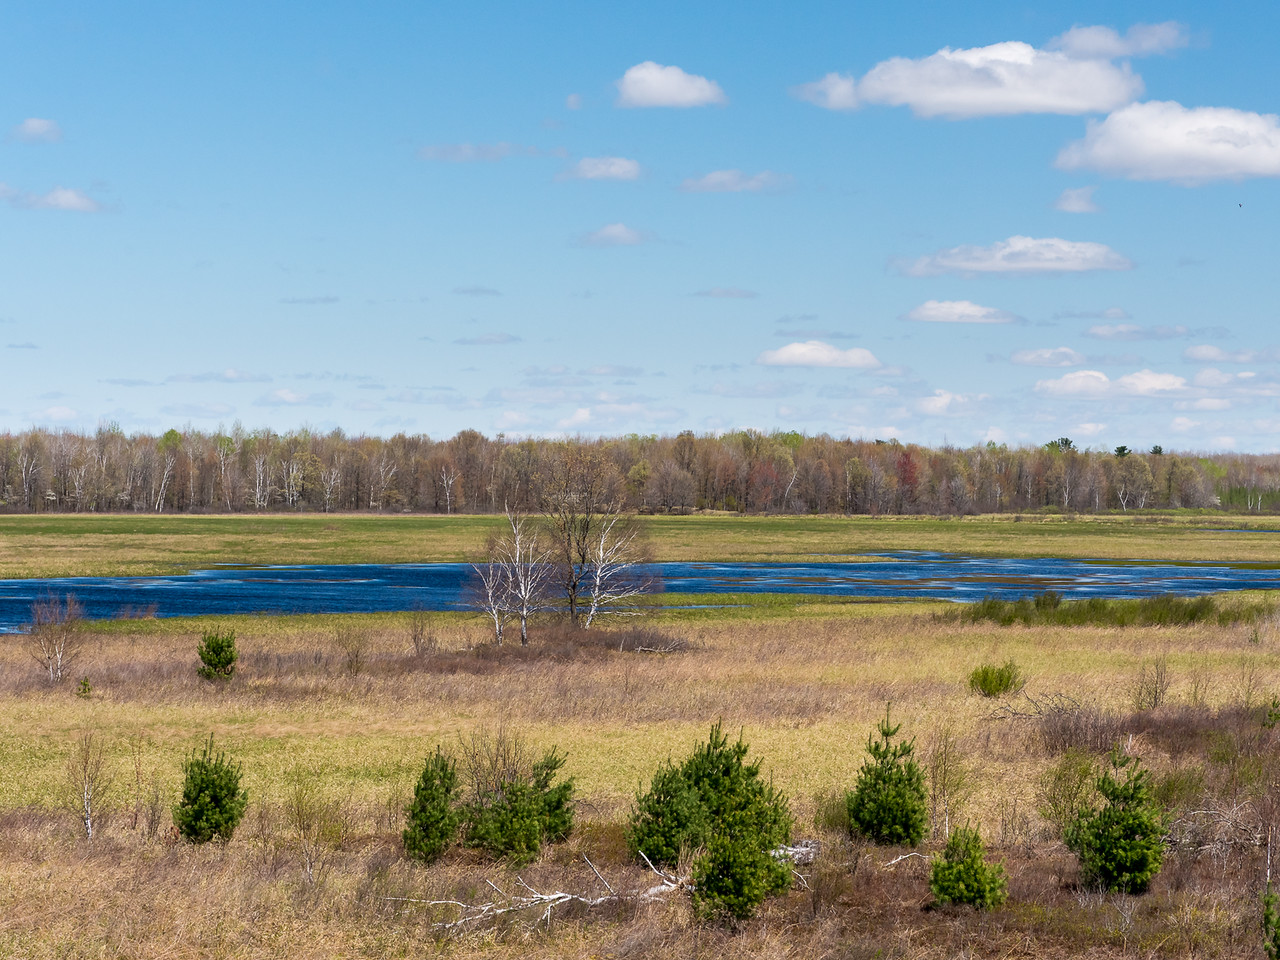 The view from one of the very tall viewing platforms at Sandhill Wildlife Preserve. It was so windy that hand holding the camera was steadier than the tripod would have been.